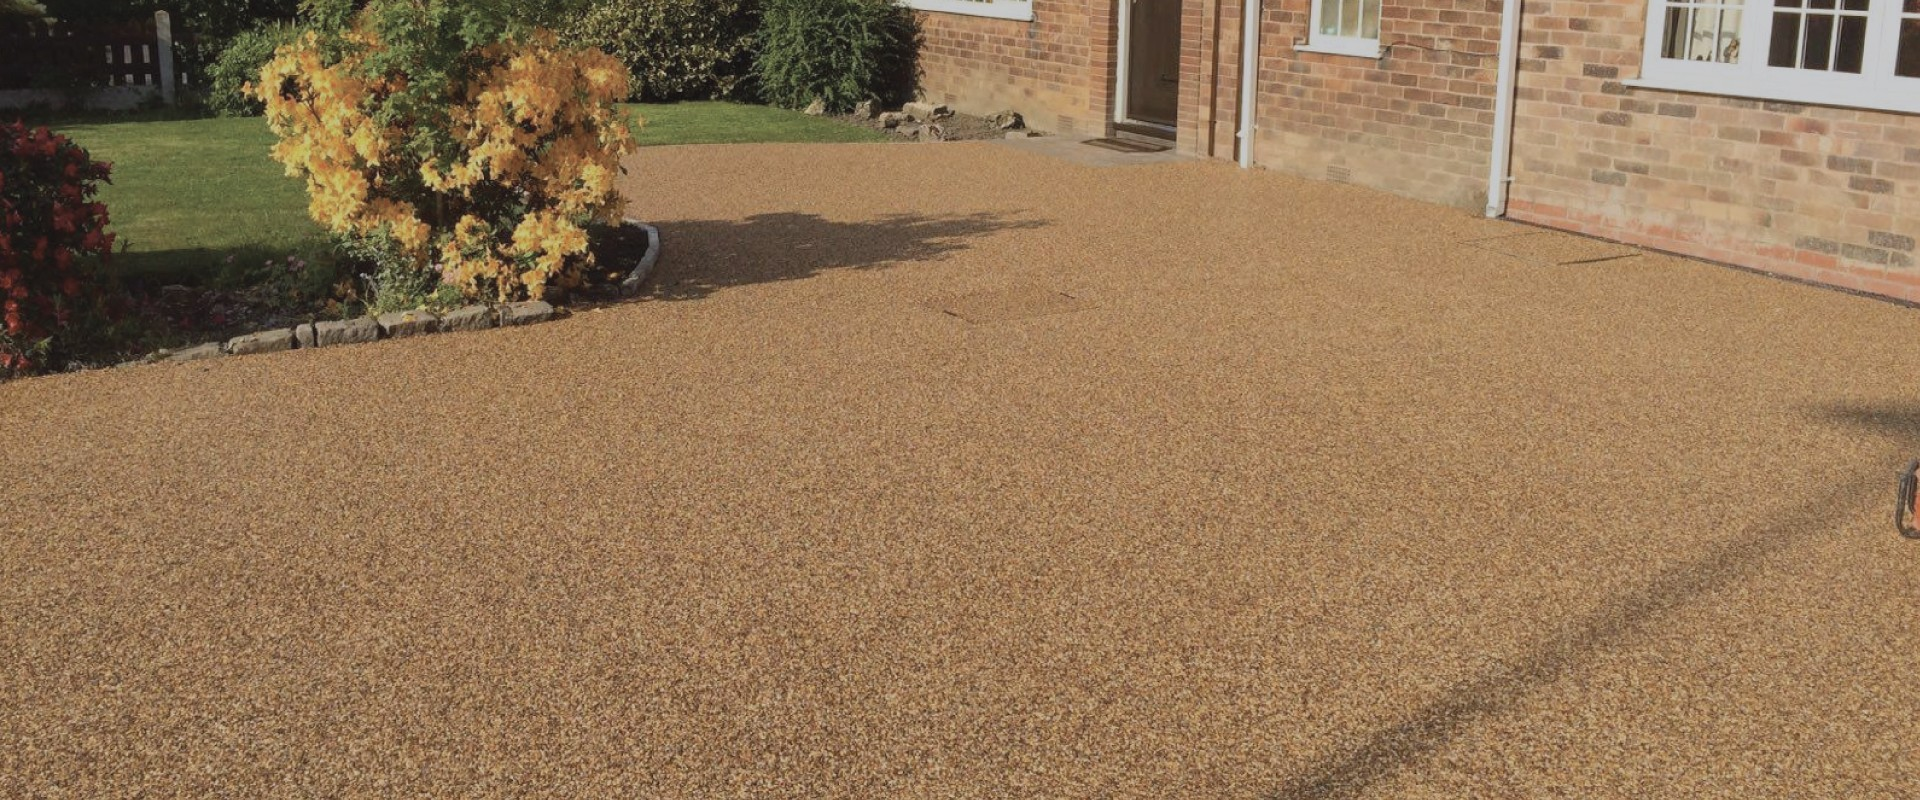 RESIN DRIVEWAYS | TARMAC DRIVEWAYS | DRIVEWAY RESURFACING | POT HOLE REPAIRS jpresinslide